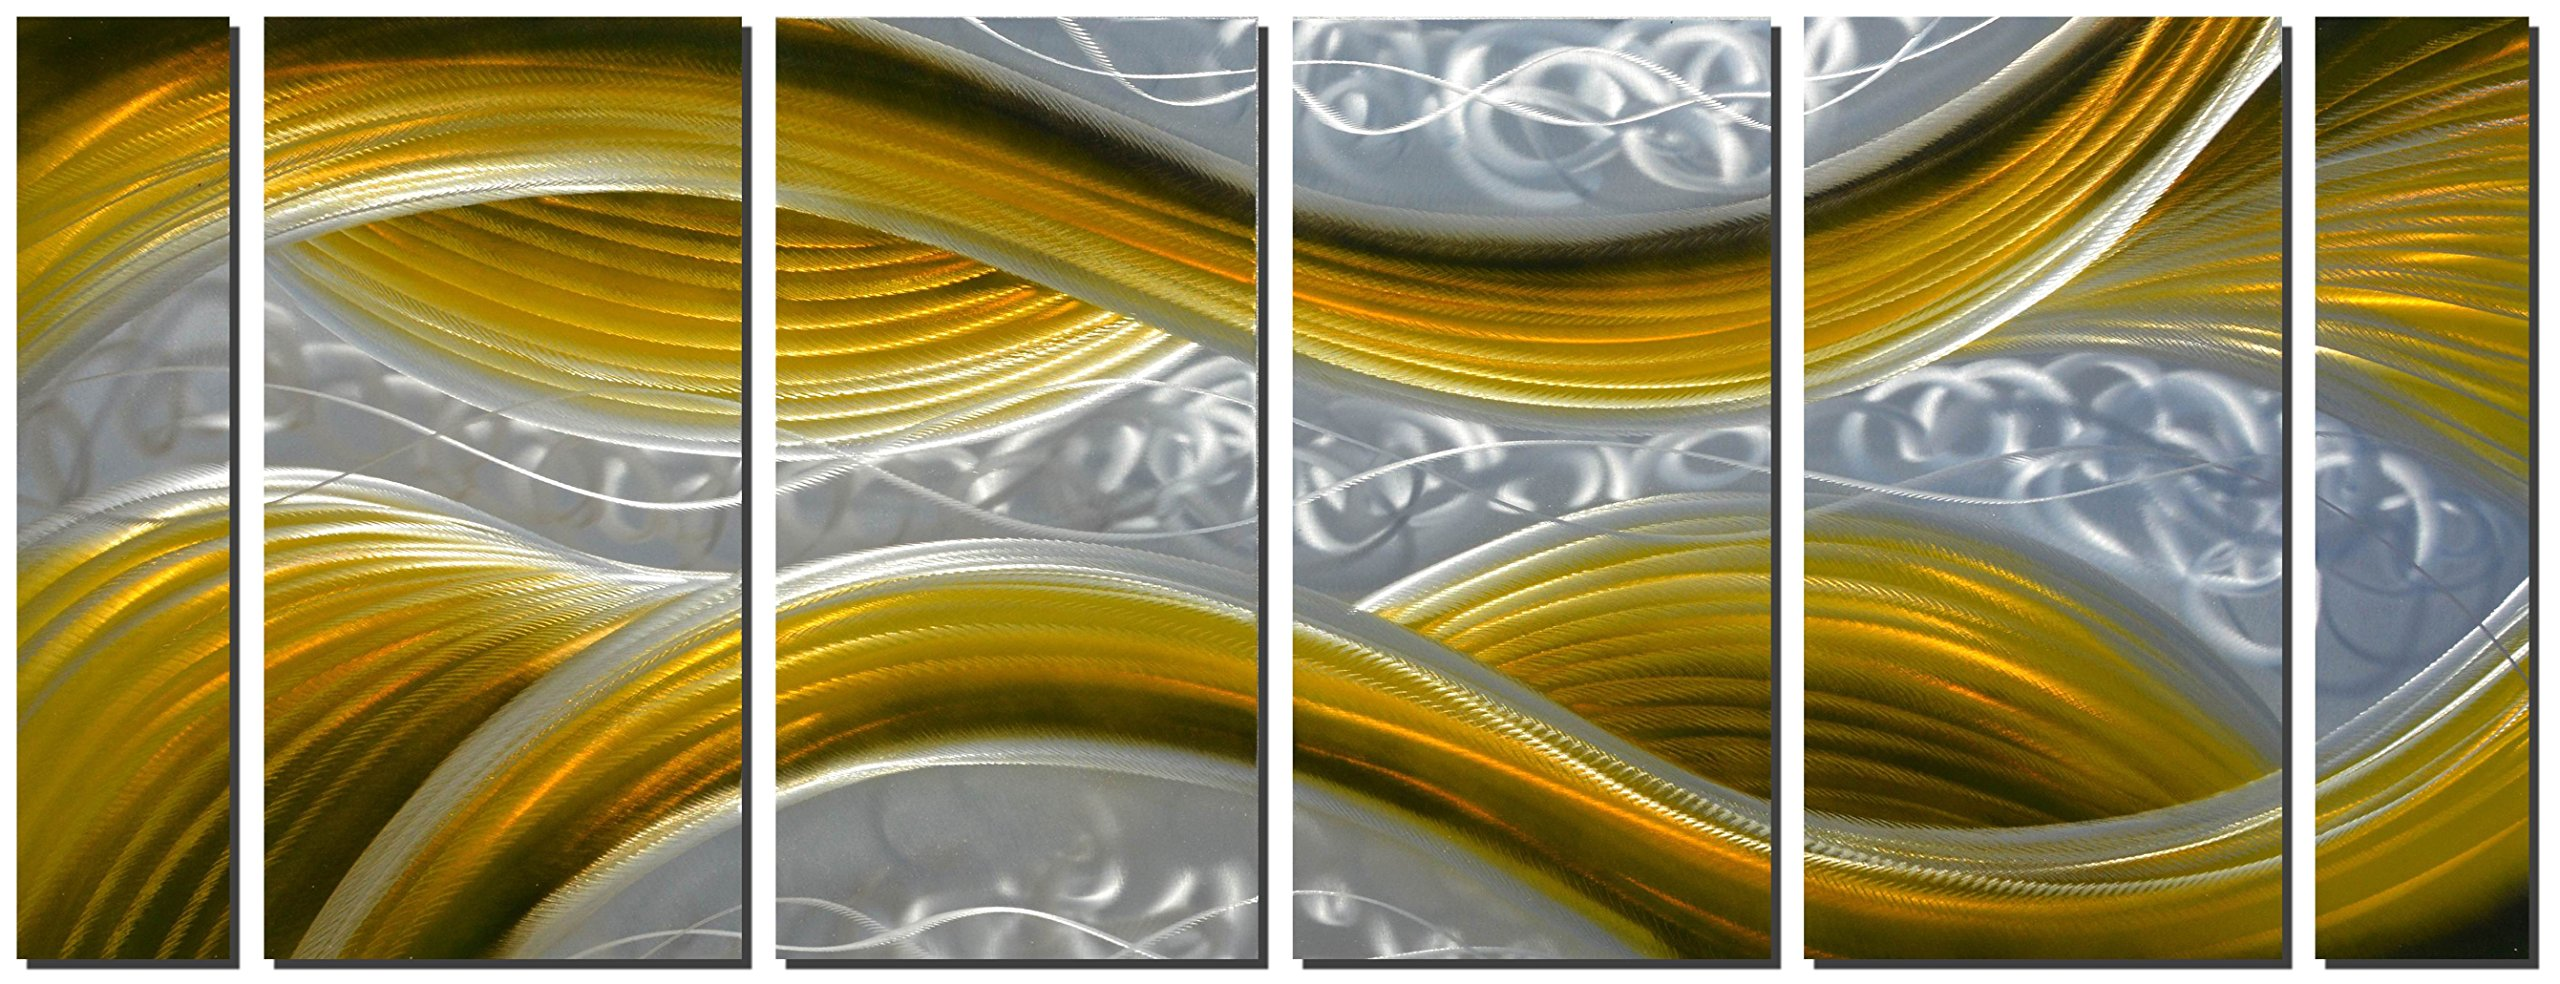 Handcrafted Abstract Metal Wall Art with Soft Color, Large Scale Decor in Yellow Line Design, 3D Artwork for Indoor Outdoor Wall Decorations, 6-Panels Metal Art Measure 24''x 65''